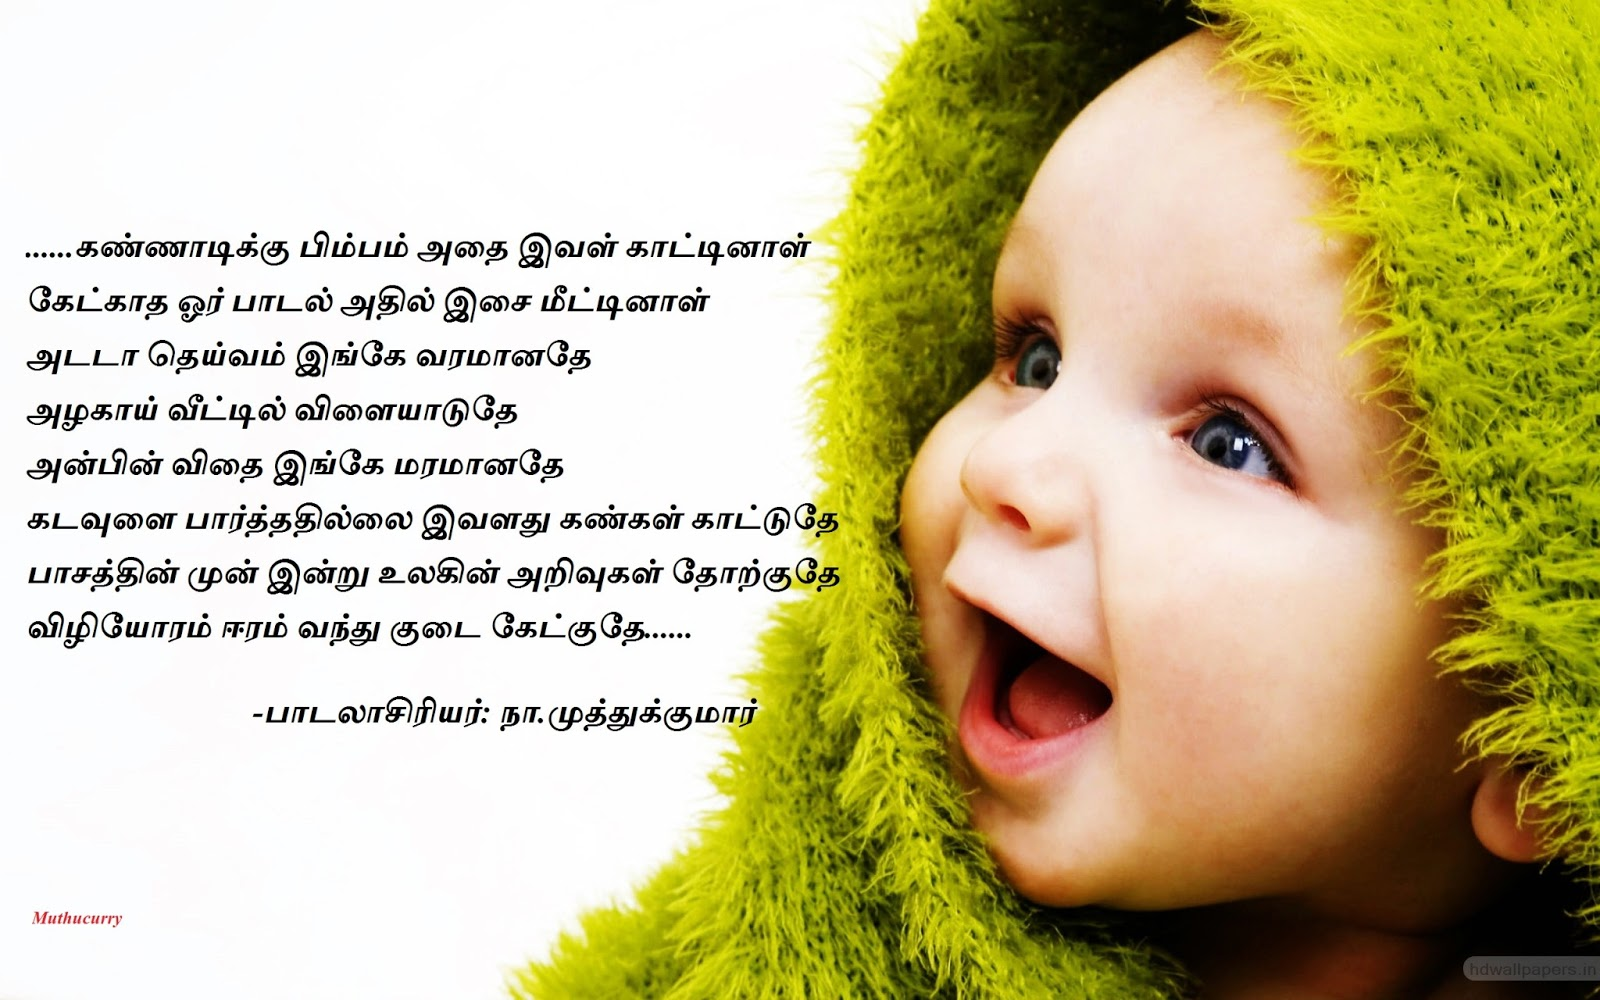 Cute Baby Photos With MessagesCute Baby Photos With Messages - little_cute_baby-wide